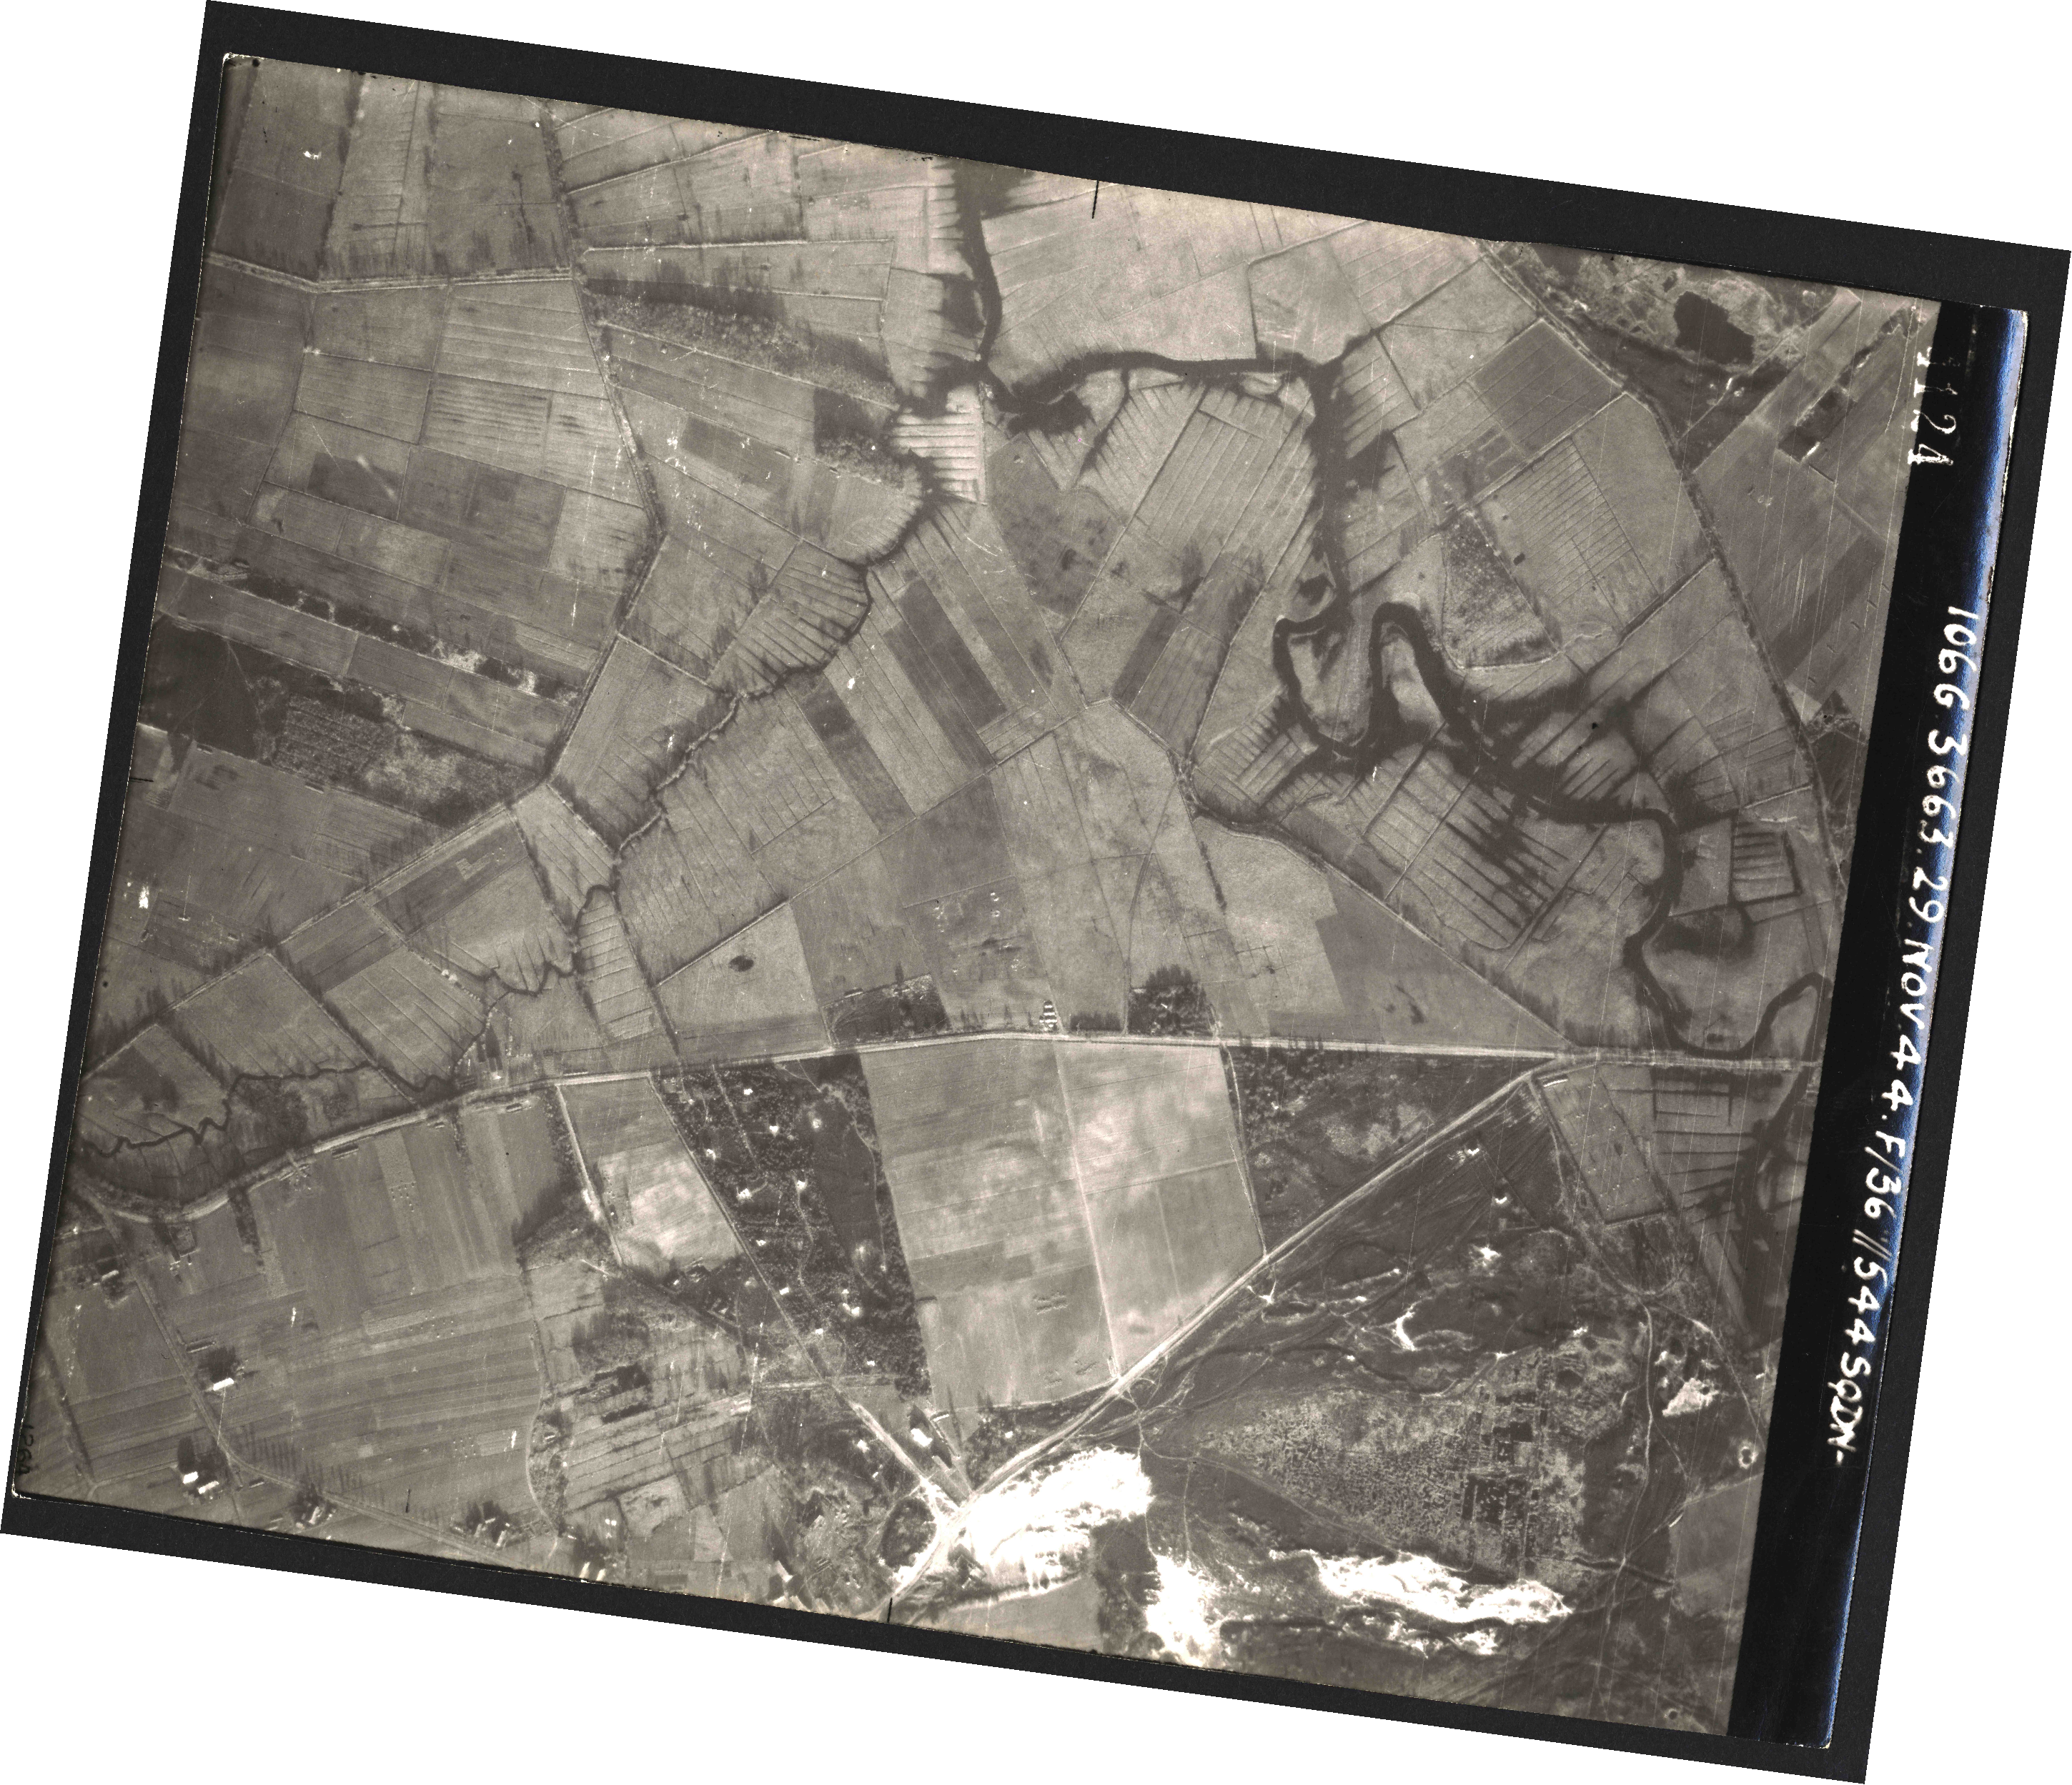 Collection RAF aerial photos 1940-1945 - flight 025, run 02, photo 4124